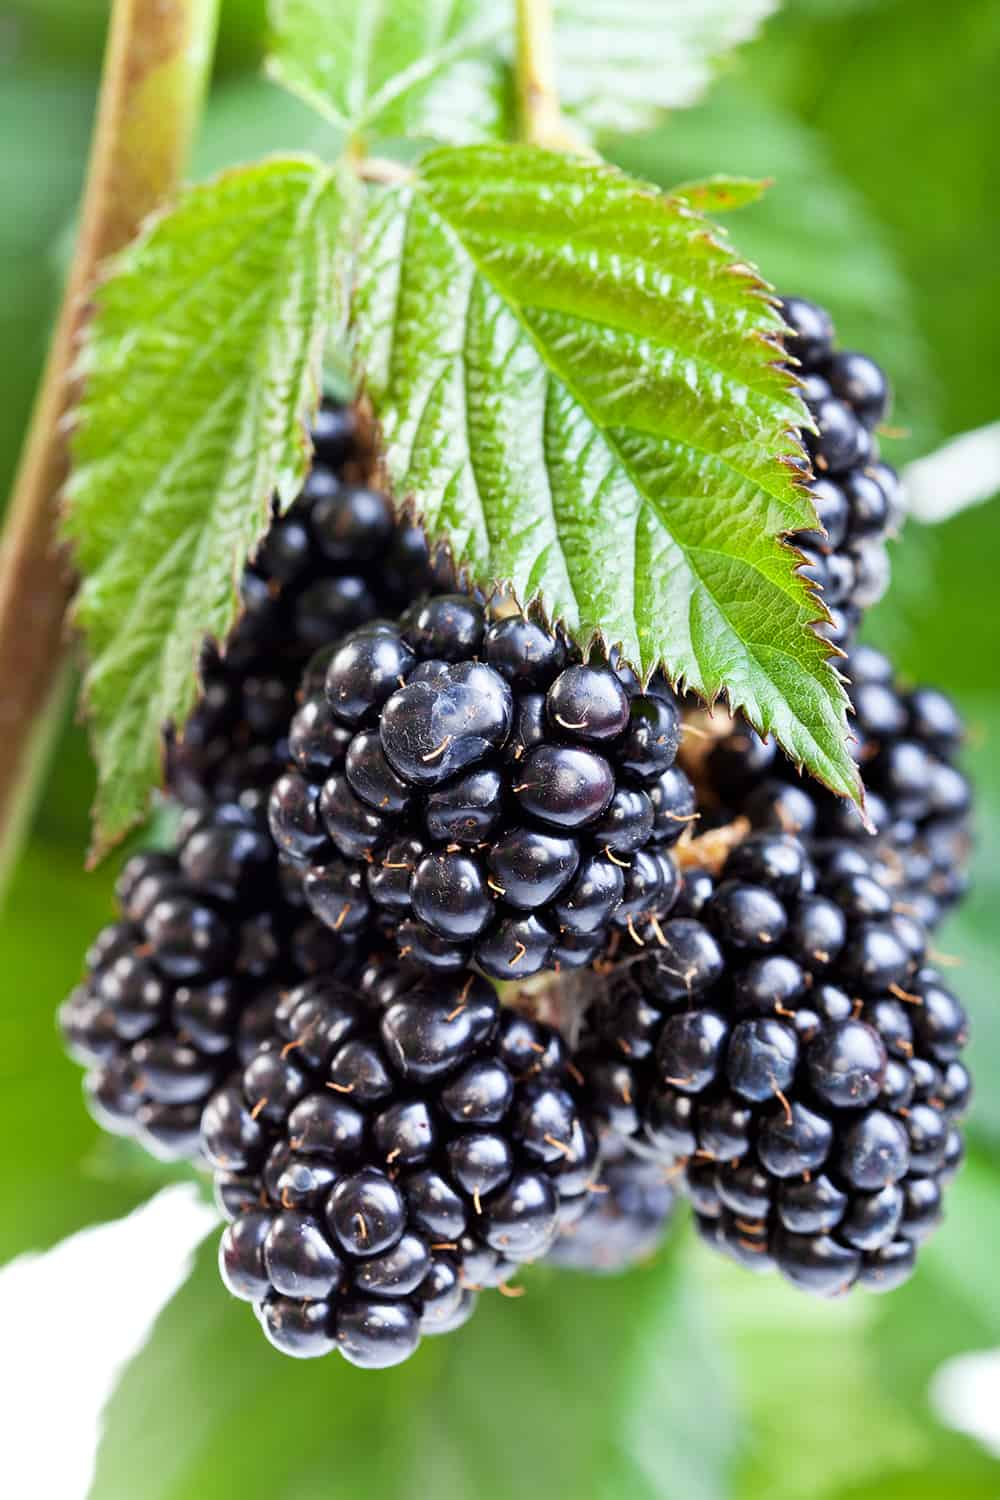 edible landscaping with blackberries